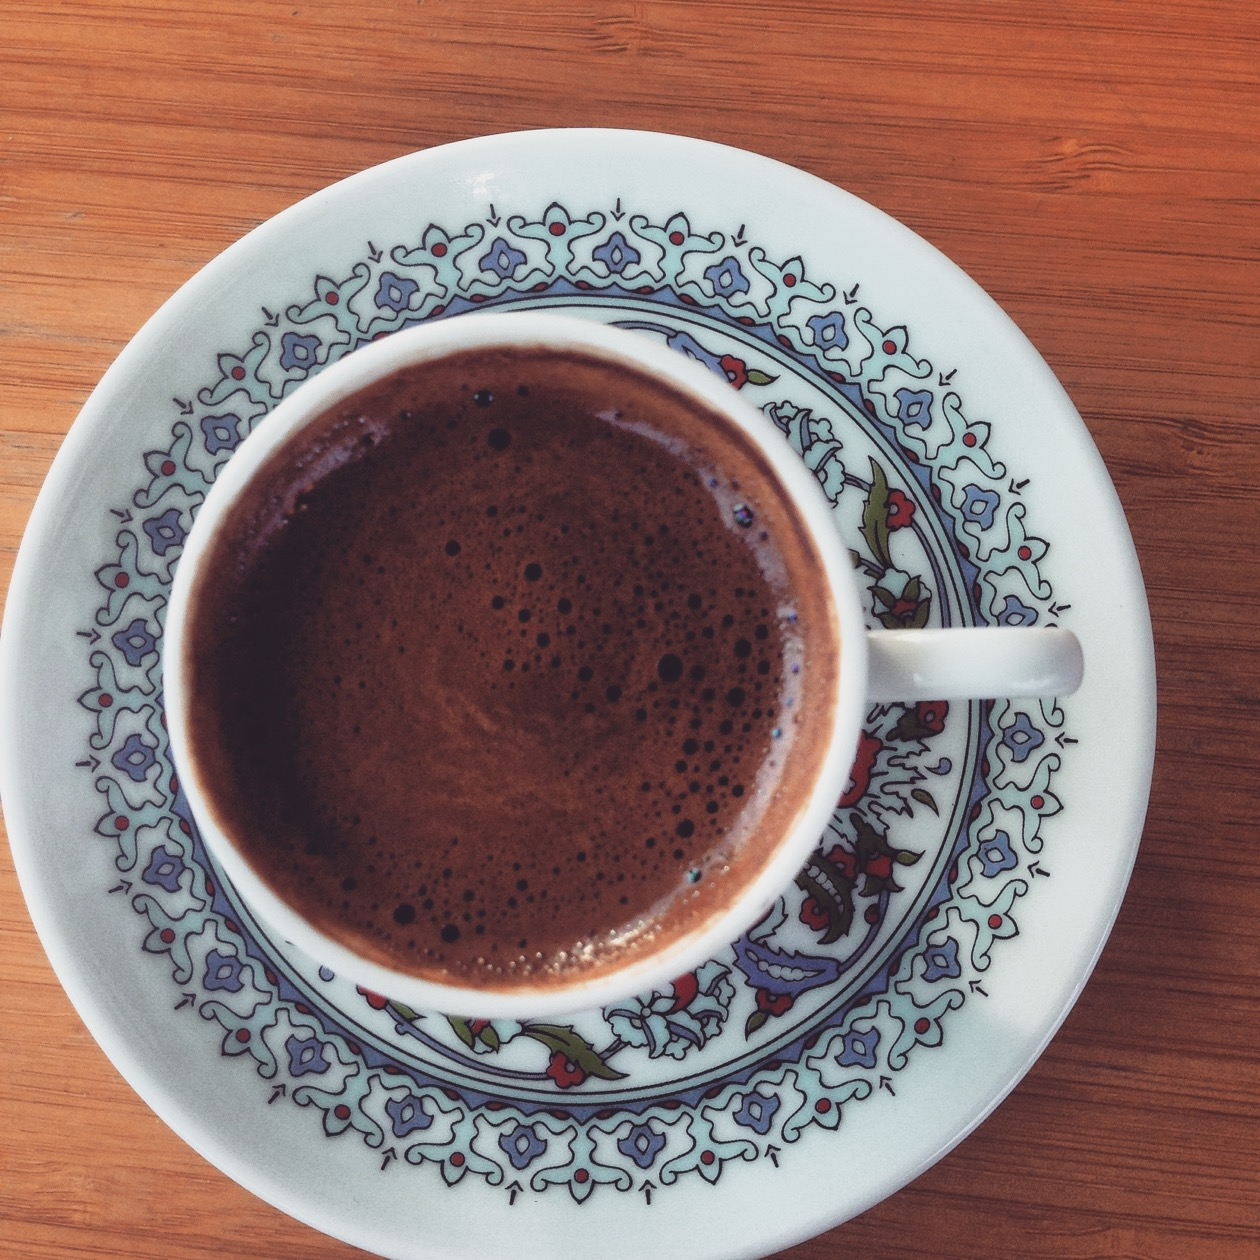 TRADITIONAL TURKISH COFFEE (PHOTO COURTESY OF JEN RIEDEL)